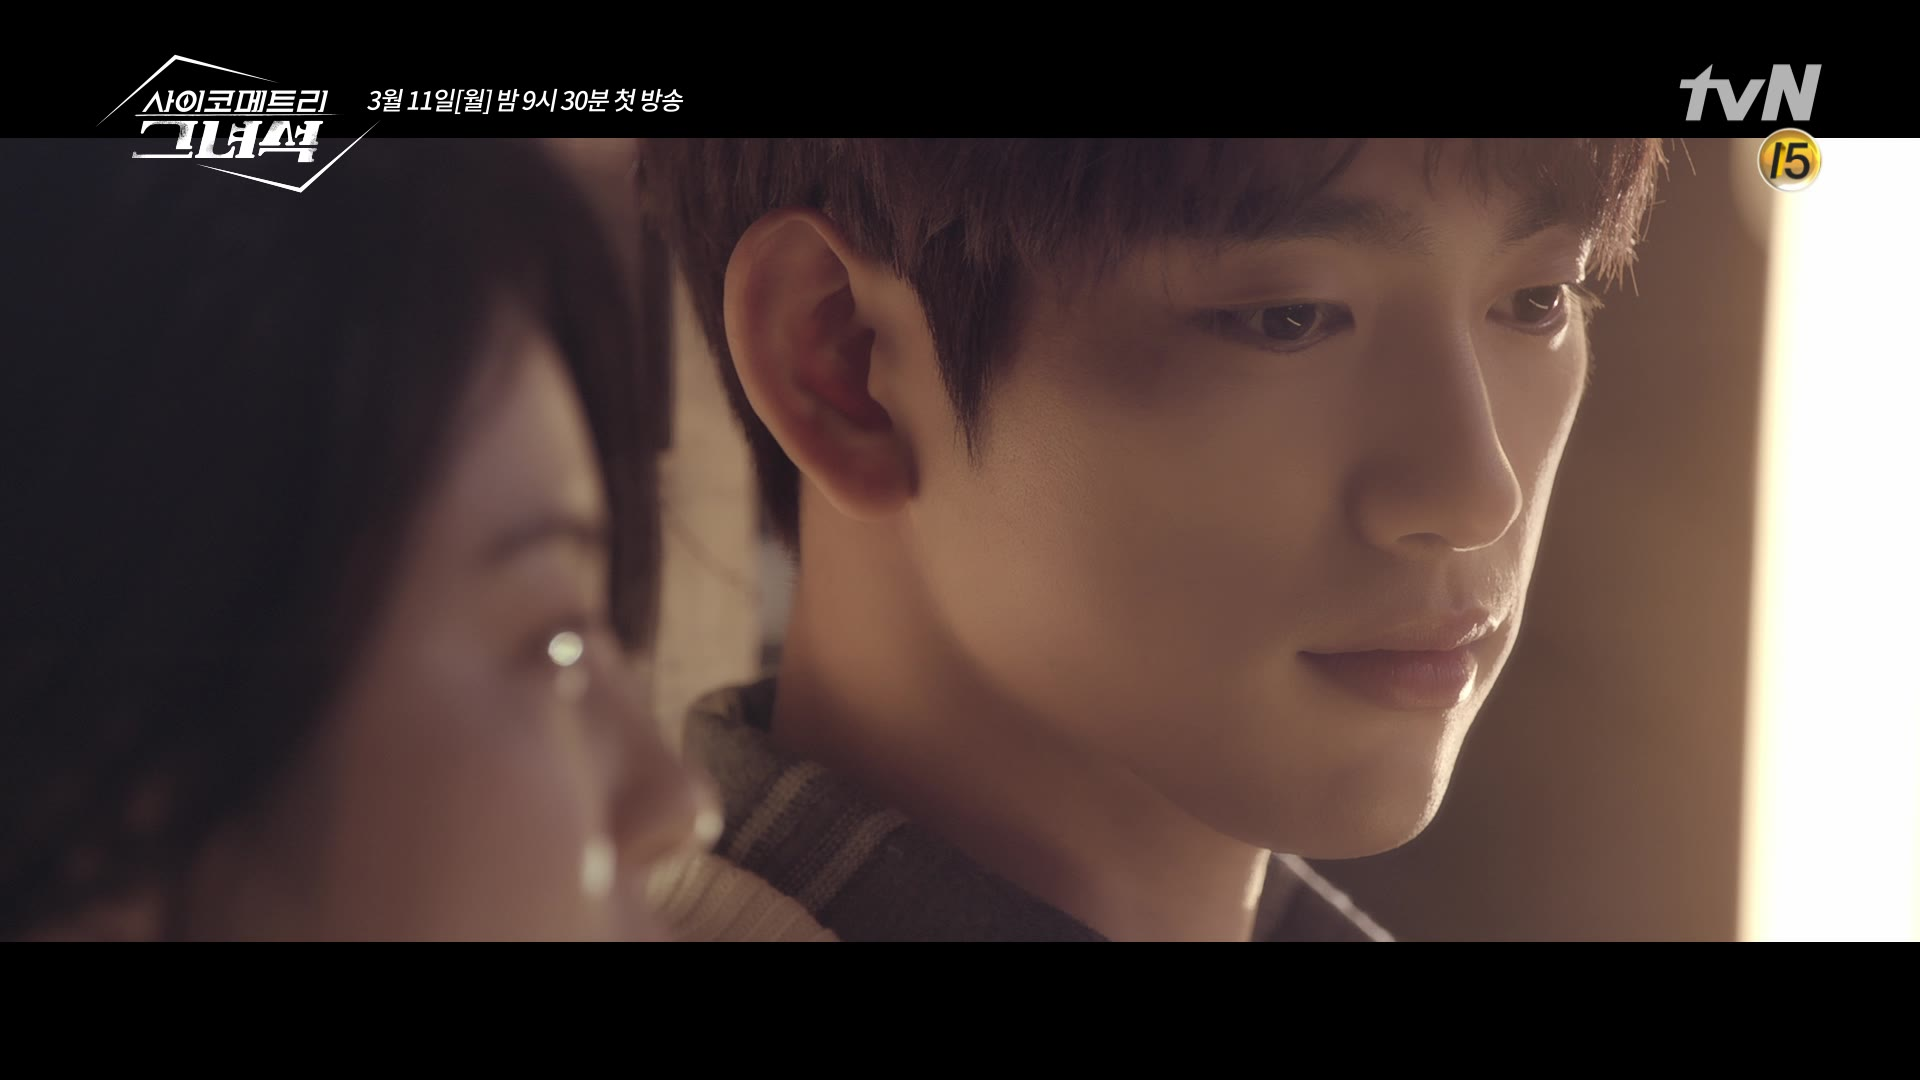 Secret Teaser 3 - Lee Ahn: He Is Psychometric